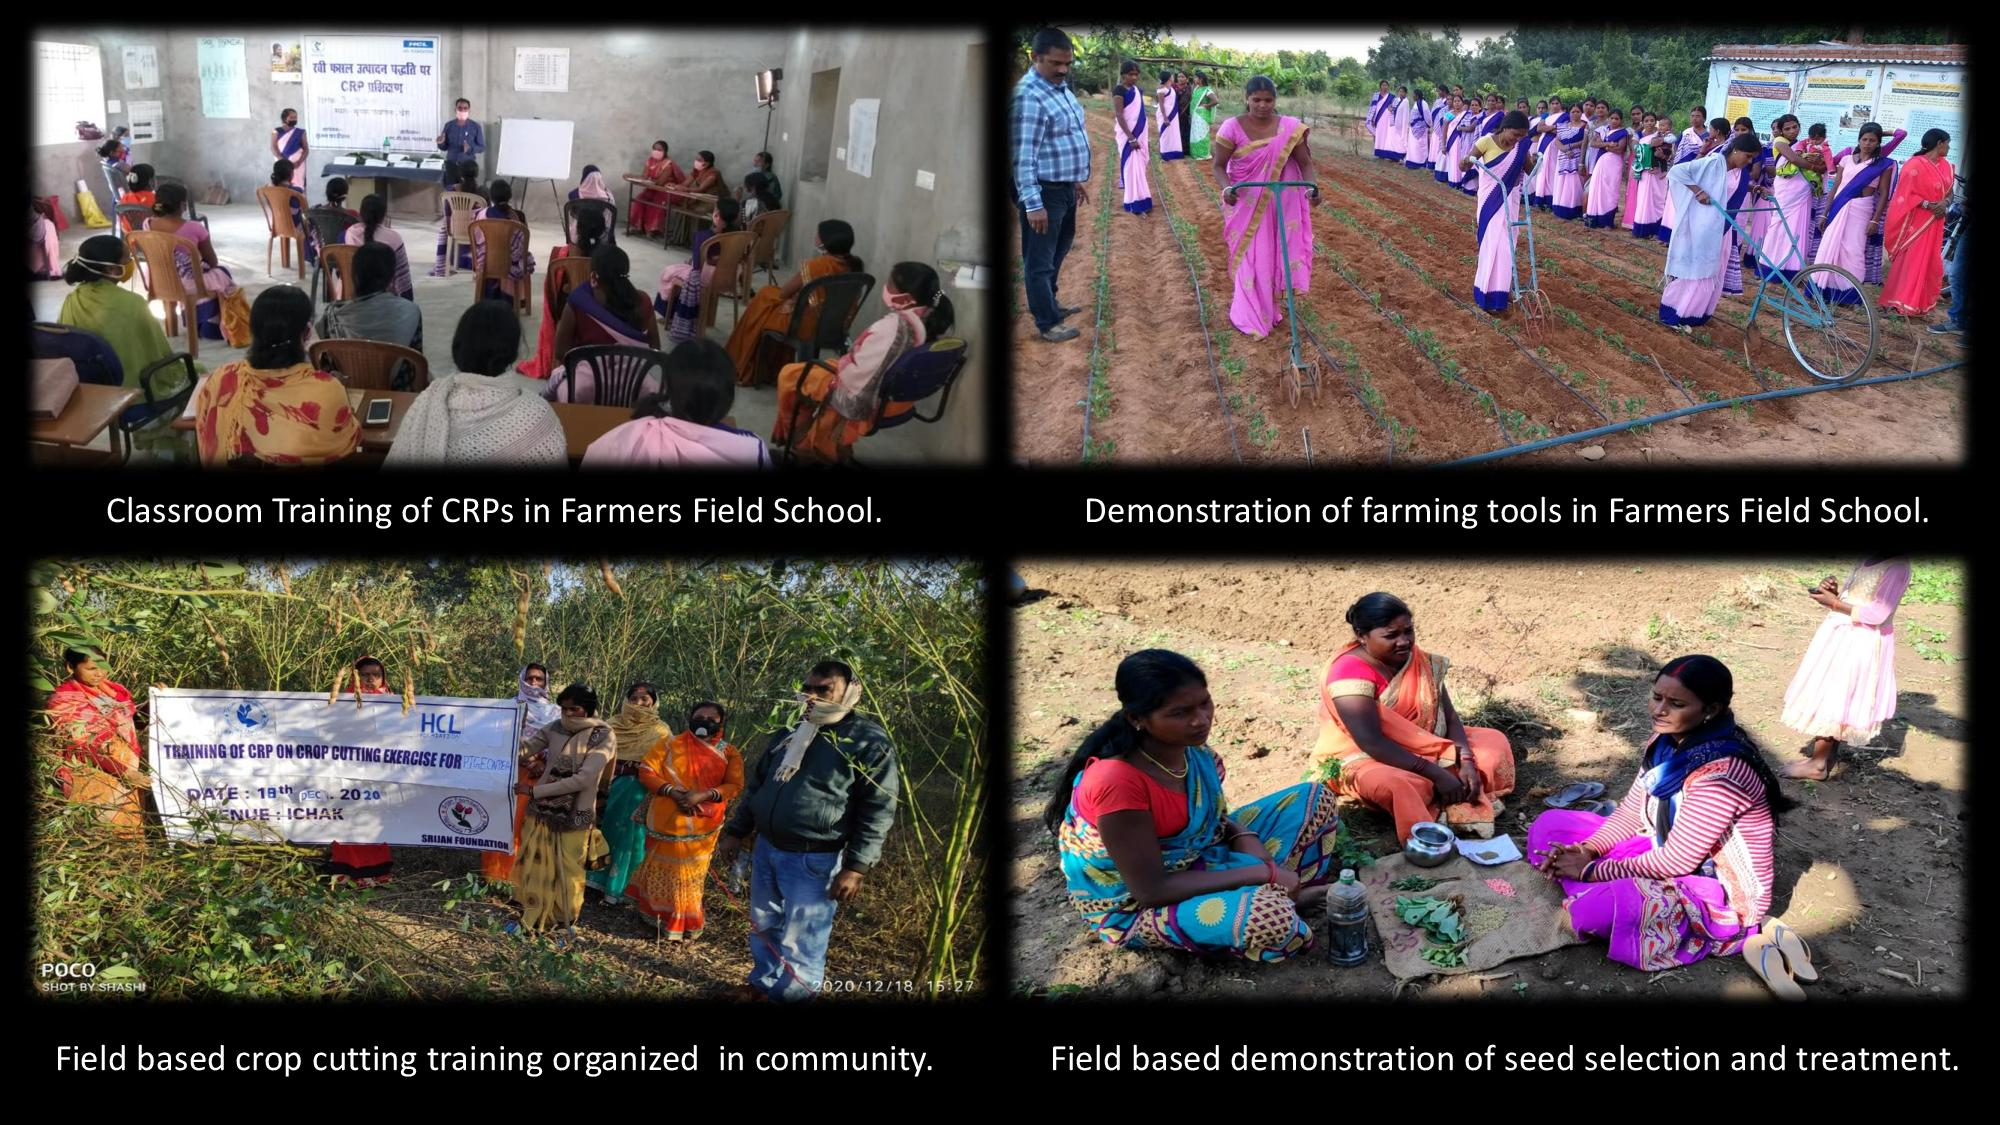 Women Farmers supported through various classroom trainings, practical field demonstrations, field trainings and hand-holding support.